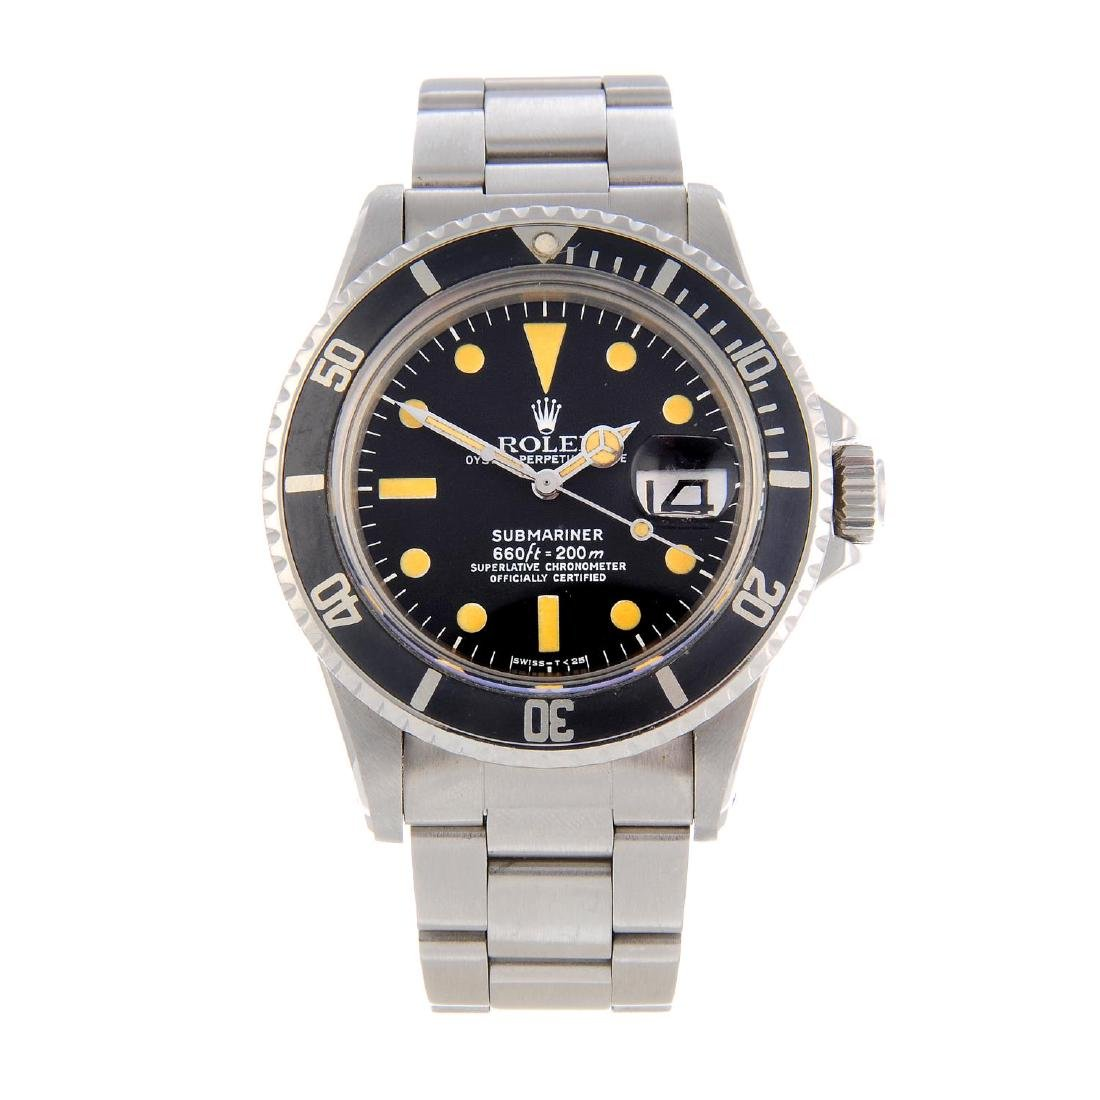 ROLEX - a gentleman's Oyster Perpetual Date Submariner